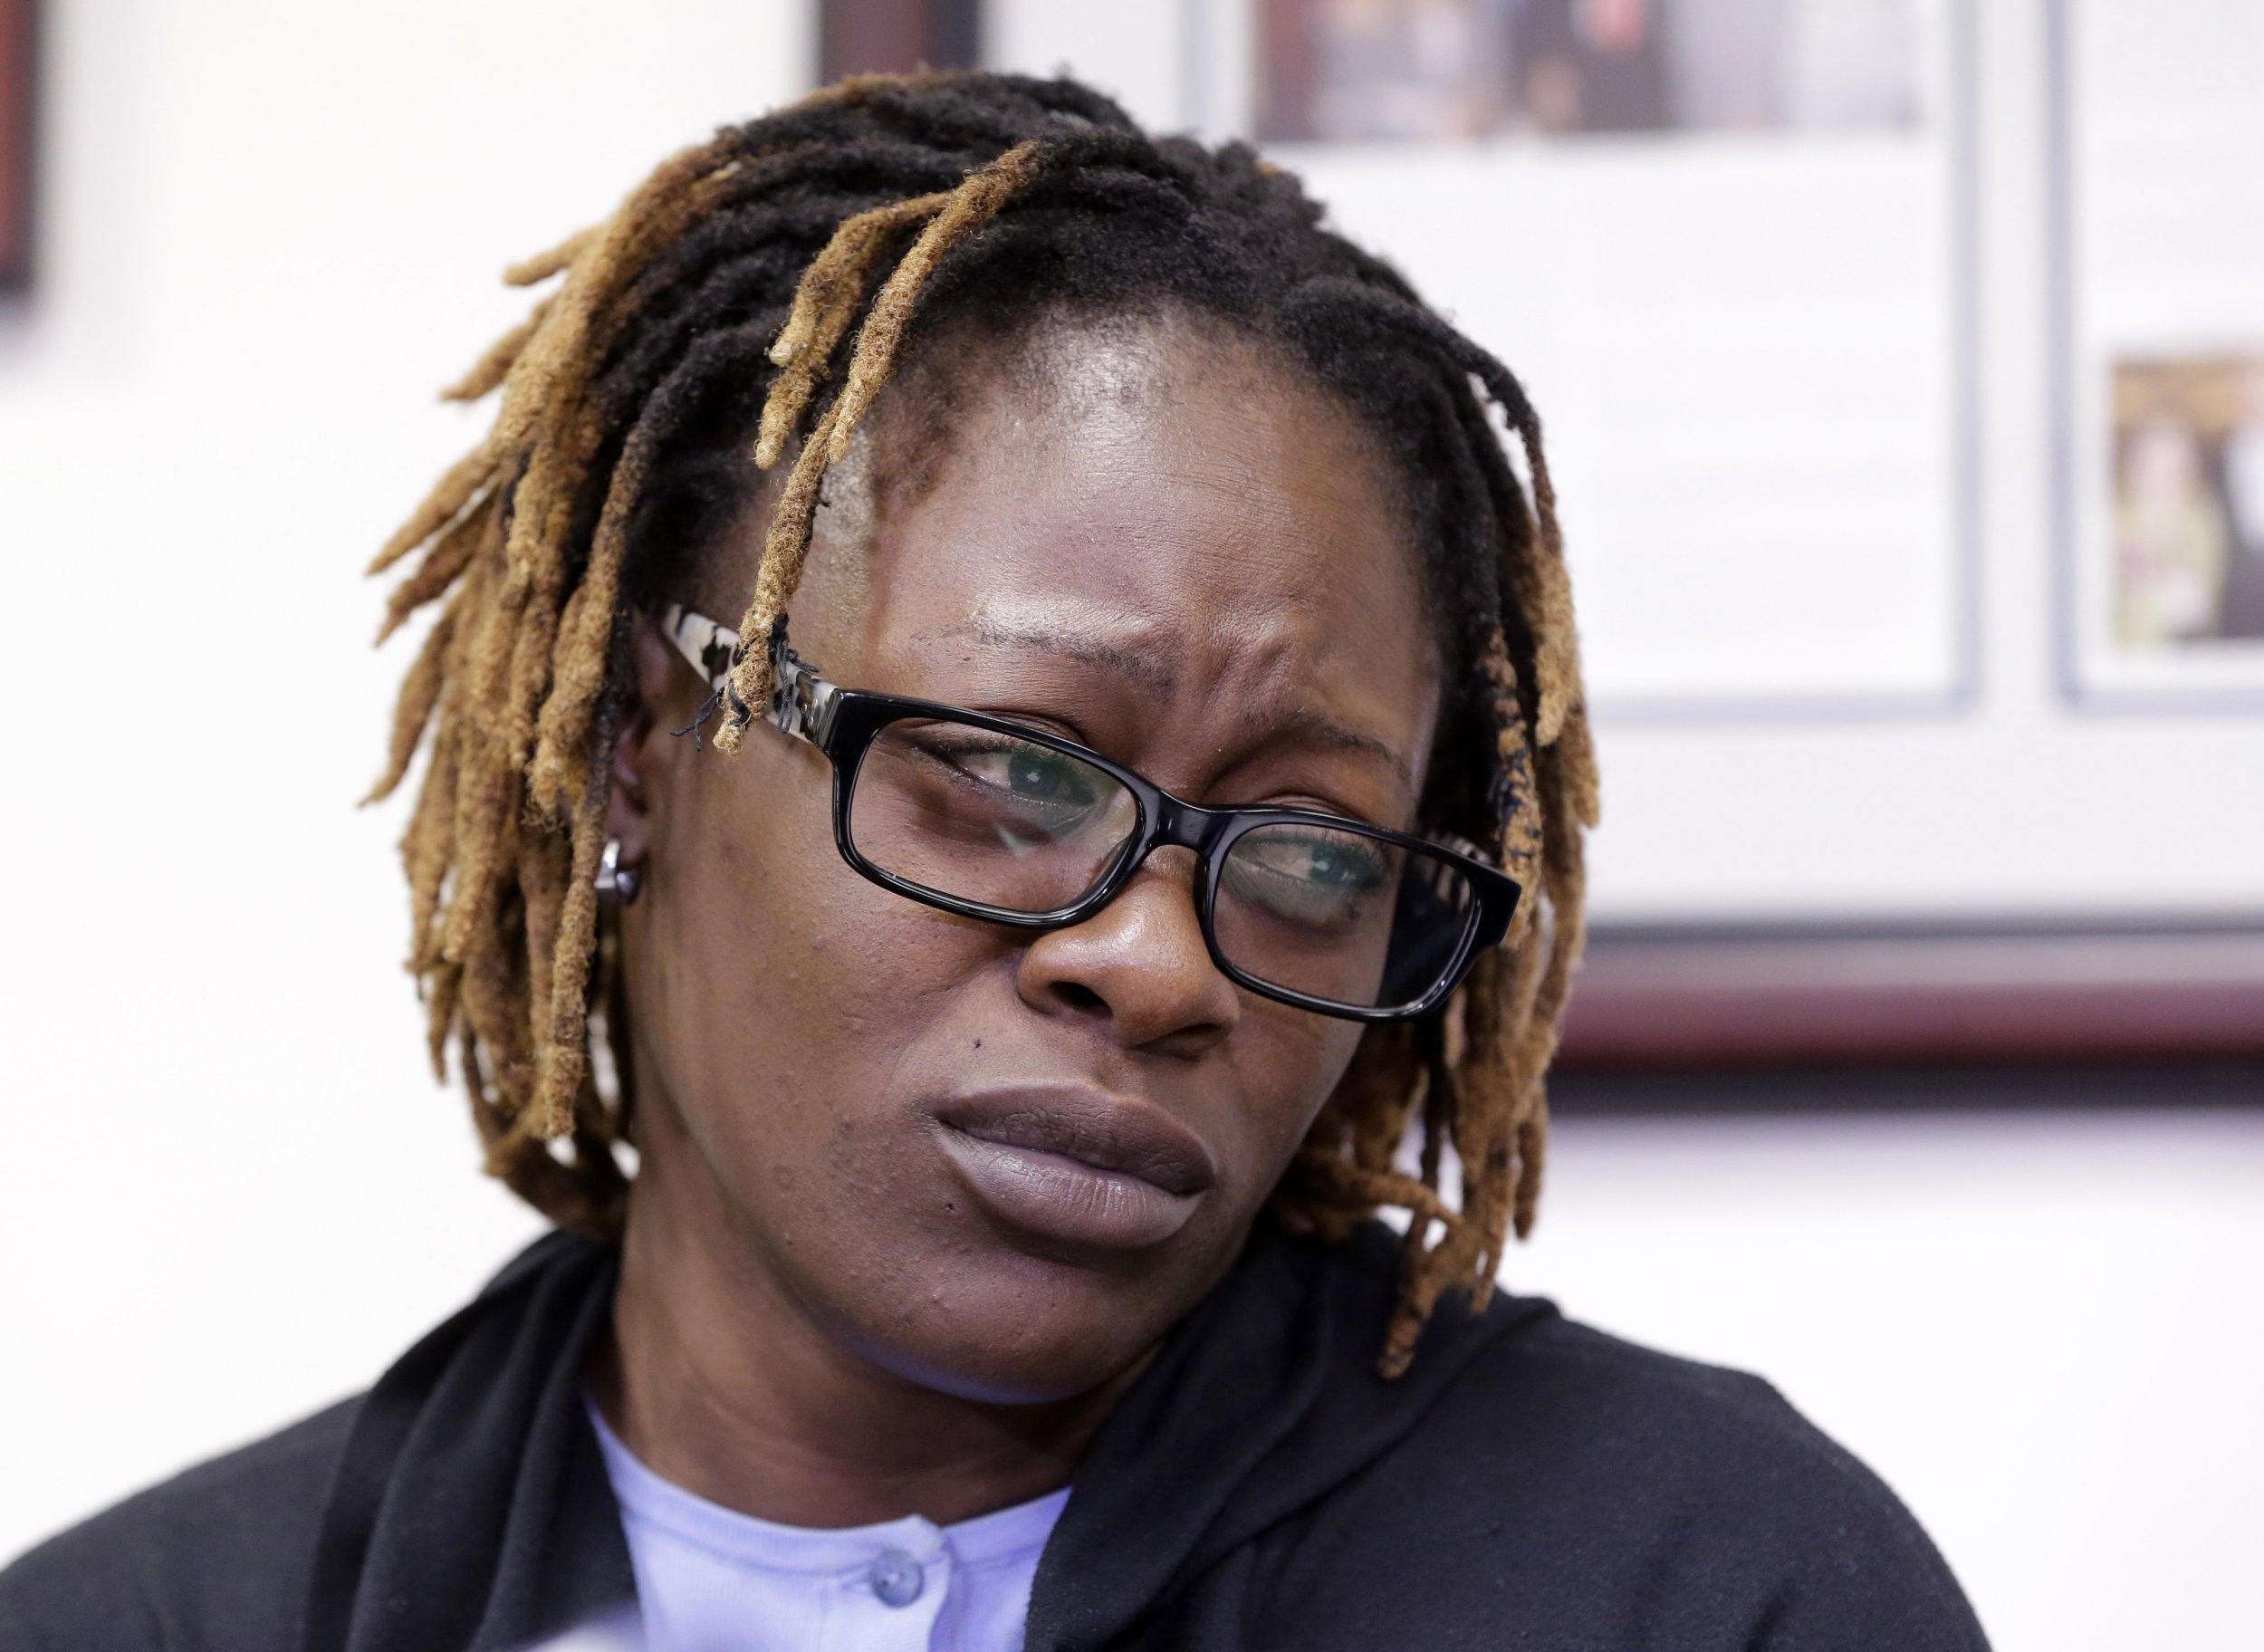 Gina Alexis, center, mother of 14-year-old Nakia Venant, who livestreamed her suicide on Facebook over the weekend, pauses as she talks about her daughter during a news conference, Wednesday, Jan. 25, 2017, in Plantation, Fla. Nakia Venant's suicide is at least the third to be livestreamed nationally in the last month. (AP Photo/Alan Diaz)